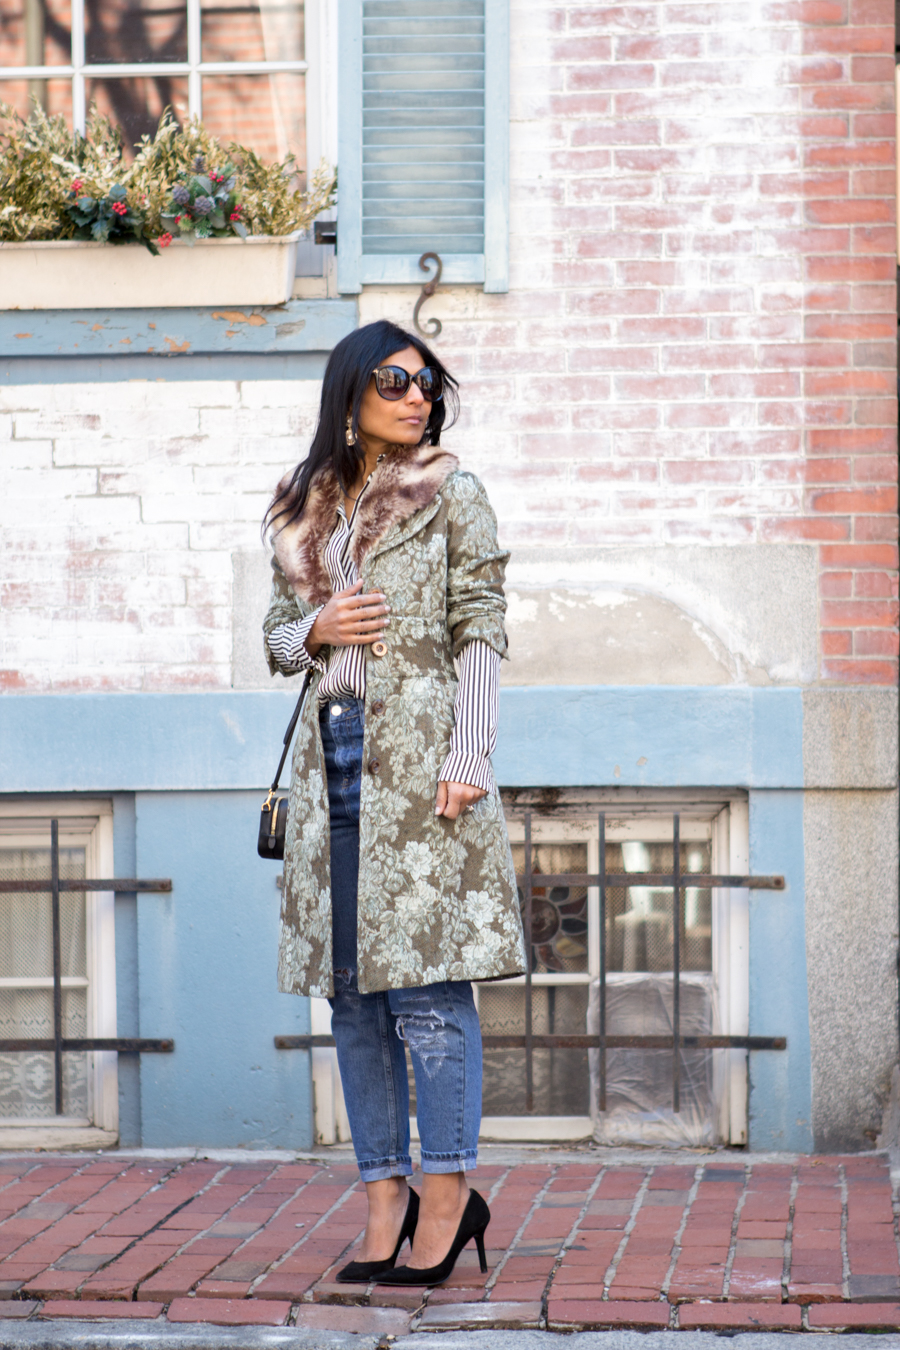 floral jacket, jacquard coat, statement coat, spring style, florals, green coat, mom jeans, black suede pumps, under $100, striped shirt, striped blouse, black and white stripes, eclectic, feminine style, easy glam, petite fashion, boston street style, mom style, mommy style, mom glam, South End, Bay Village